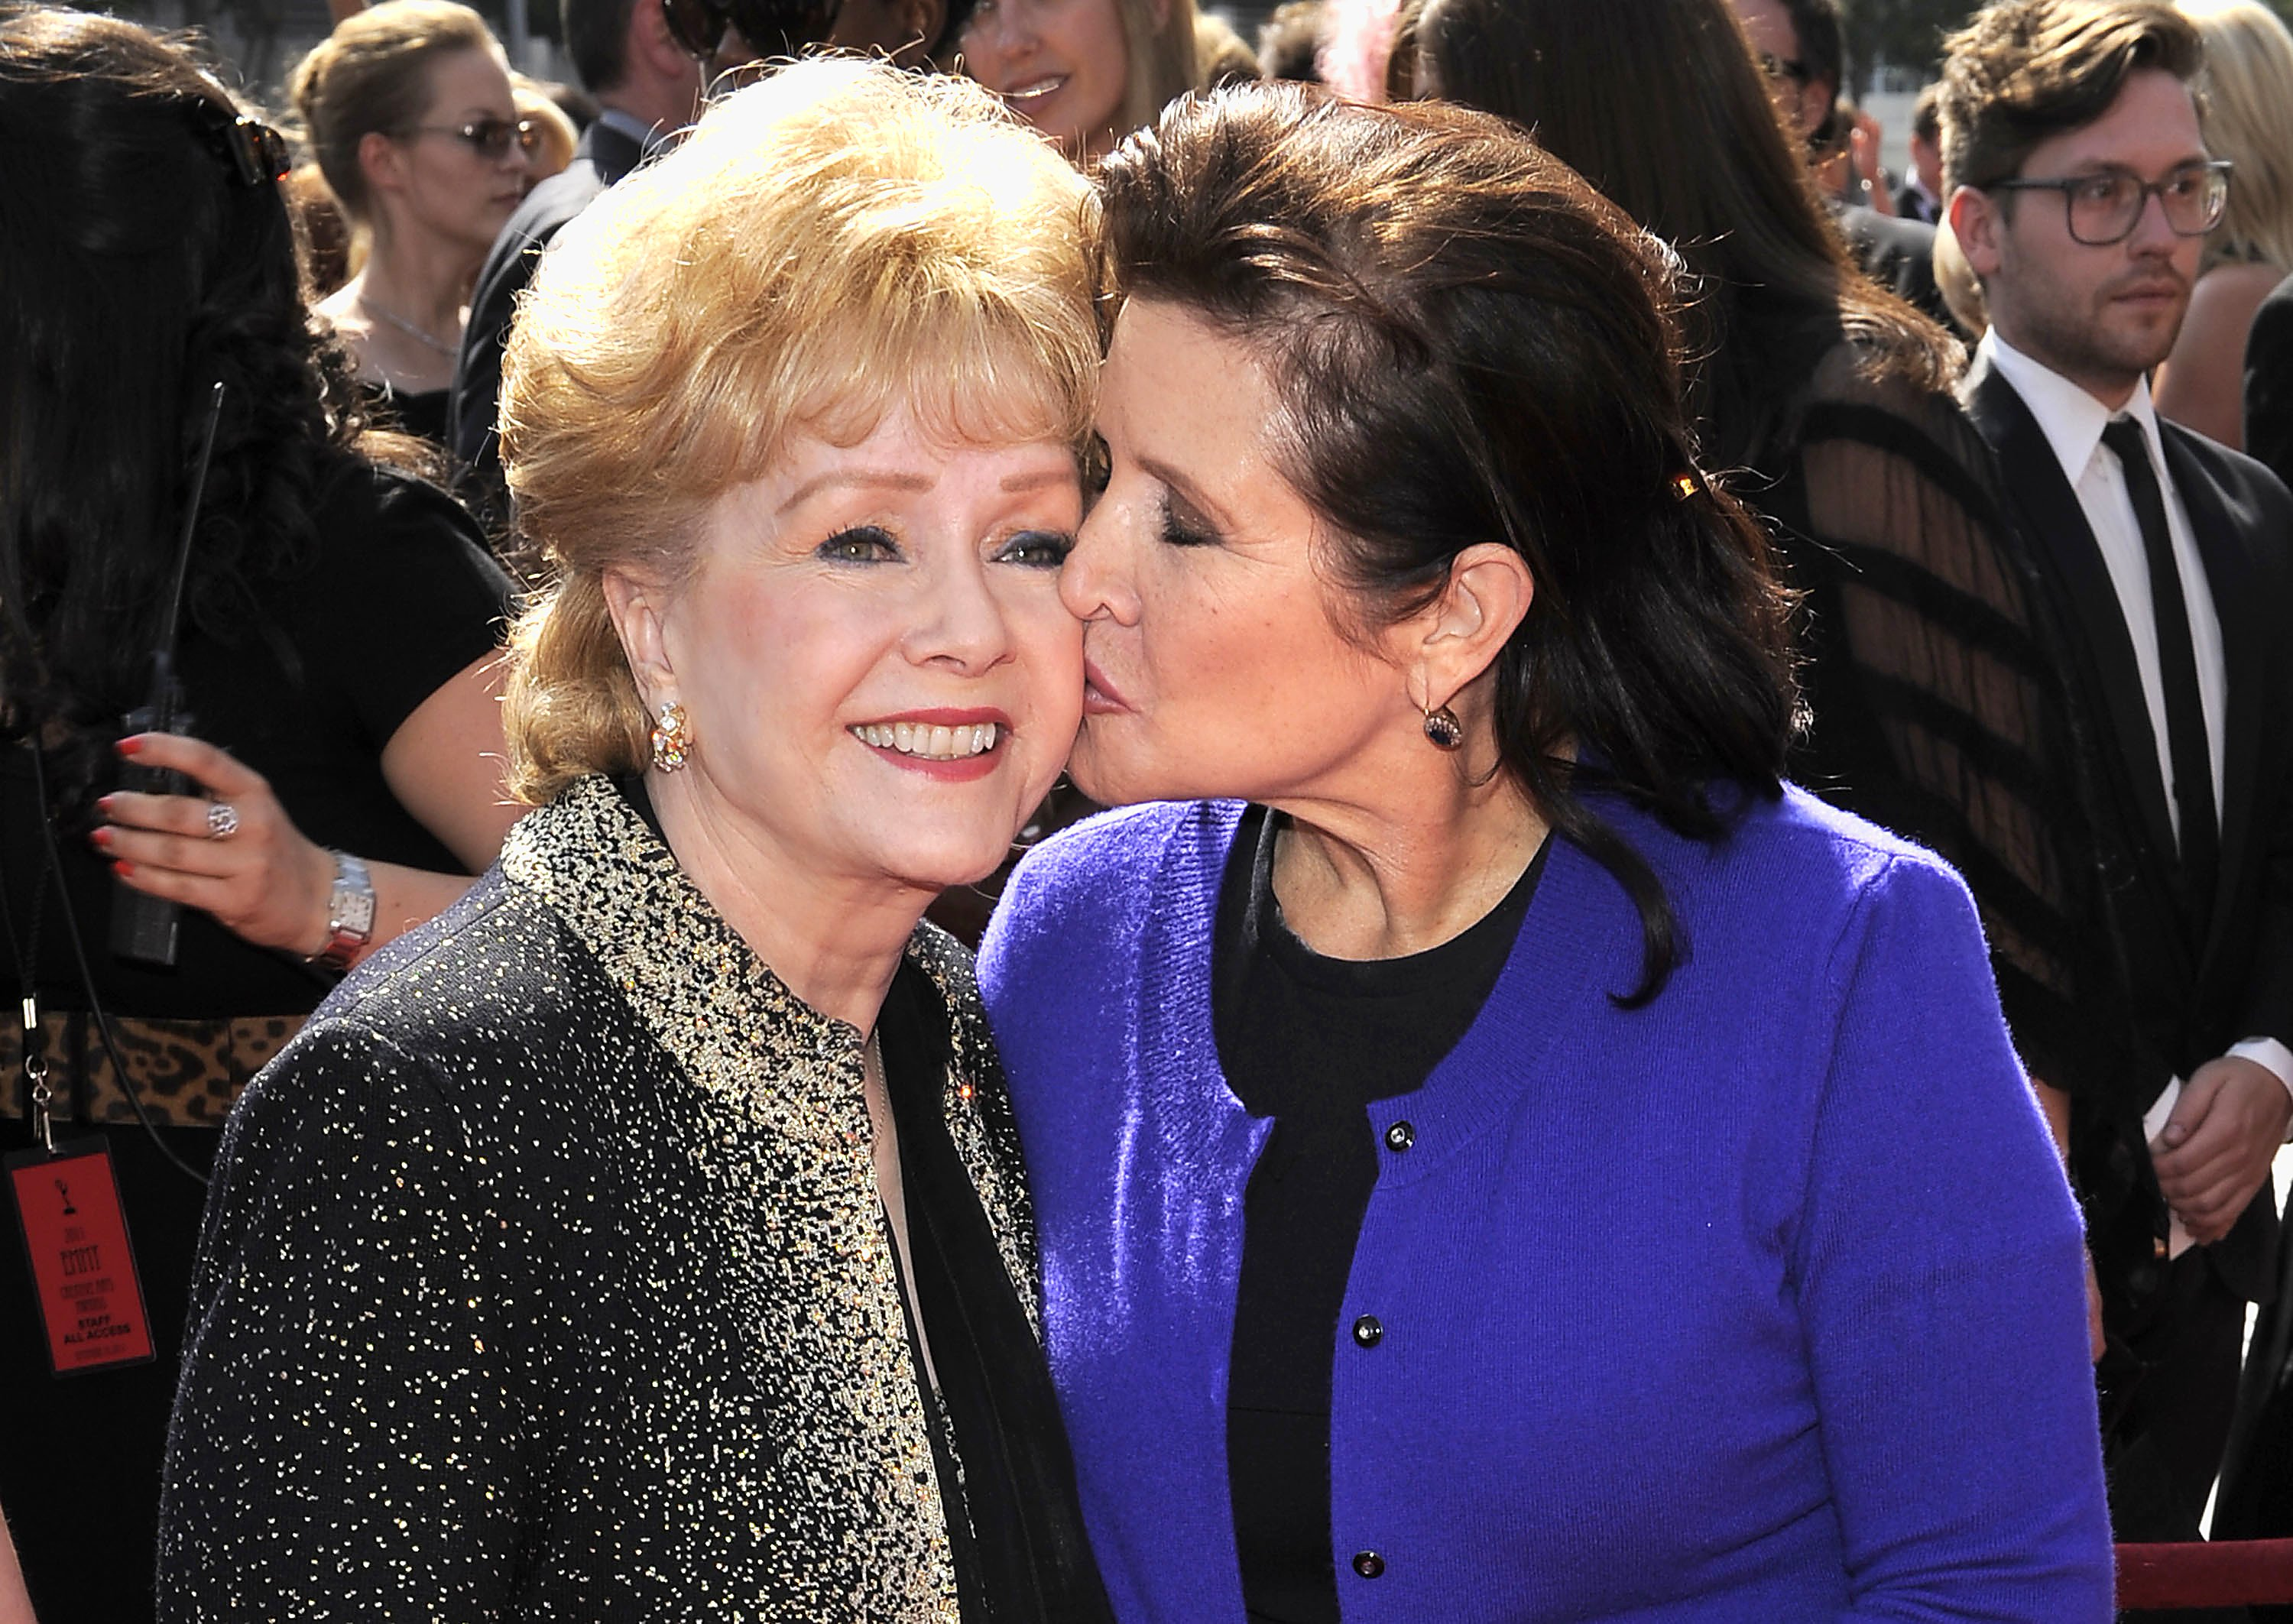 APTOPIX Debbie Reynolds Debbie Reynolds and daughter Carrie Fisher in 2011.